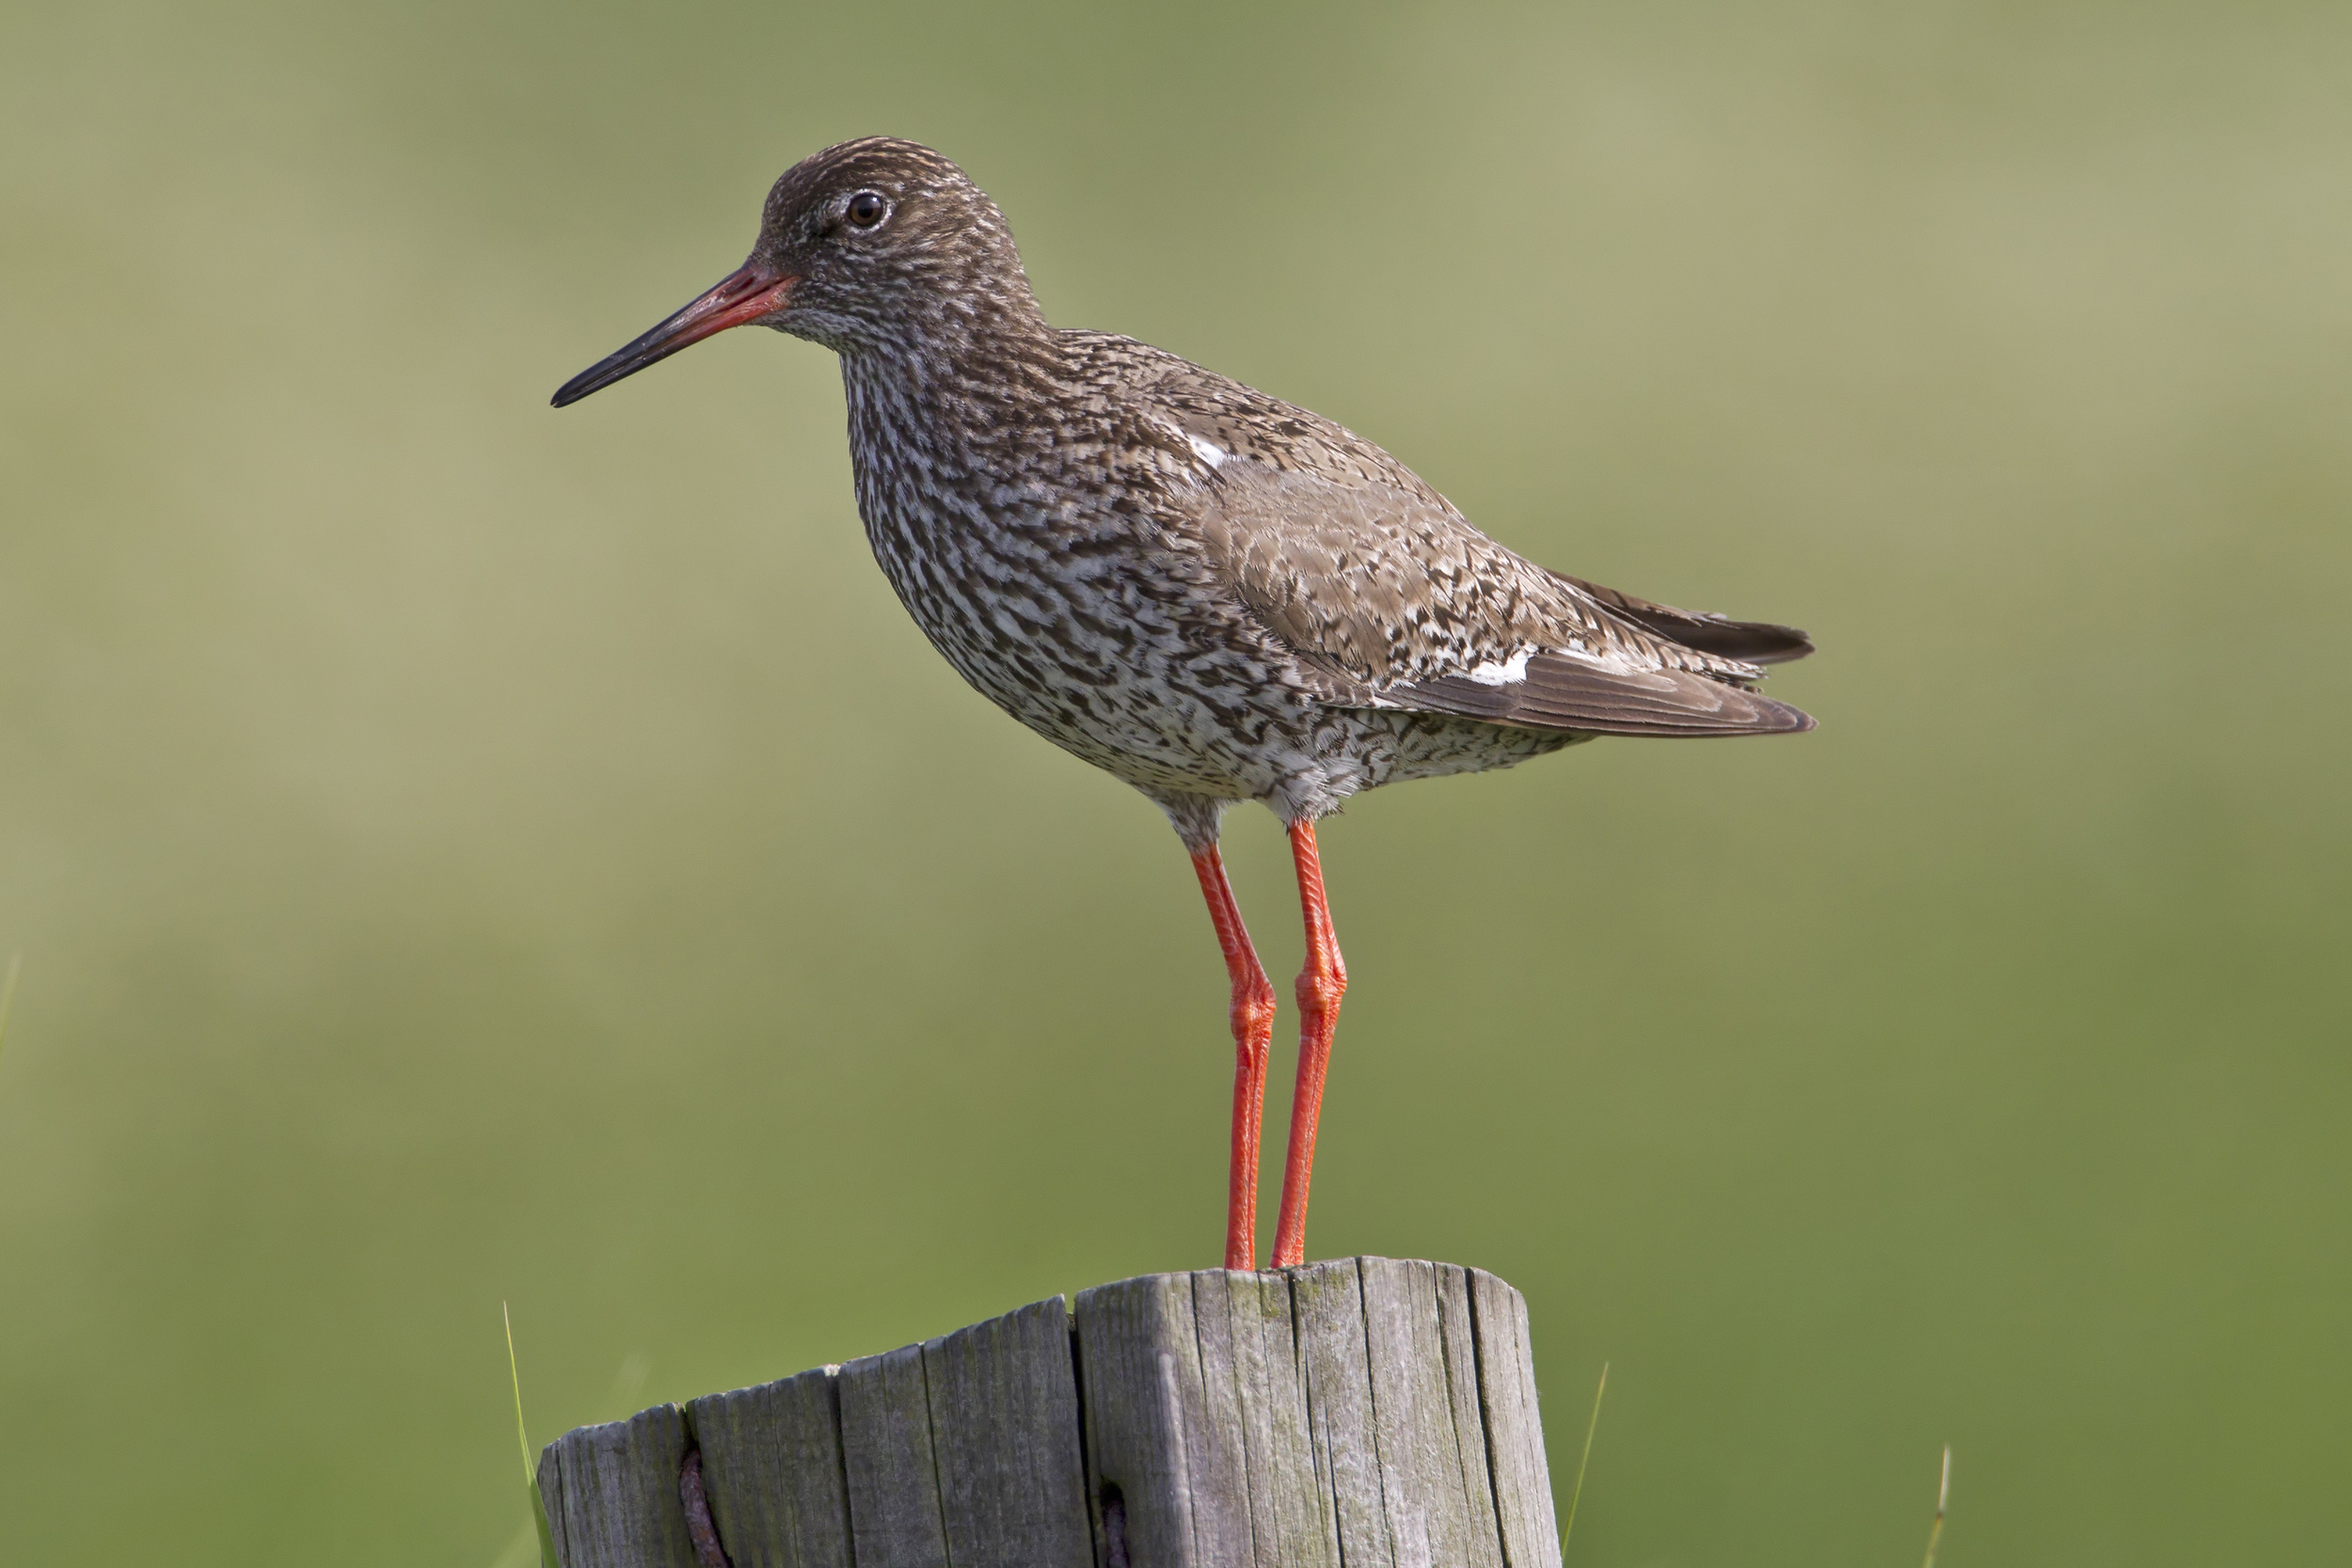 Common_Redshank_Tringa_totanus.jpg